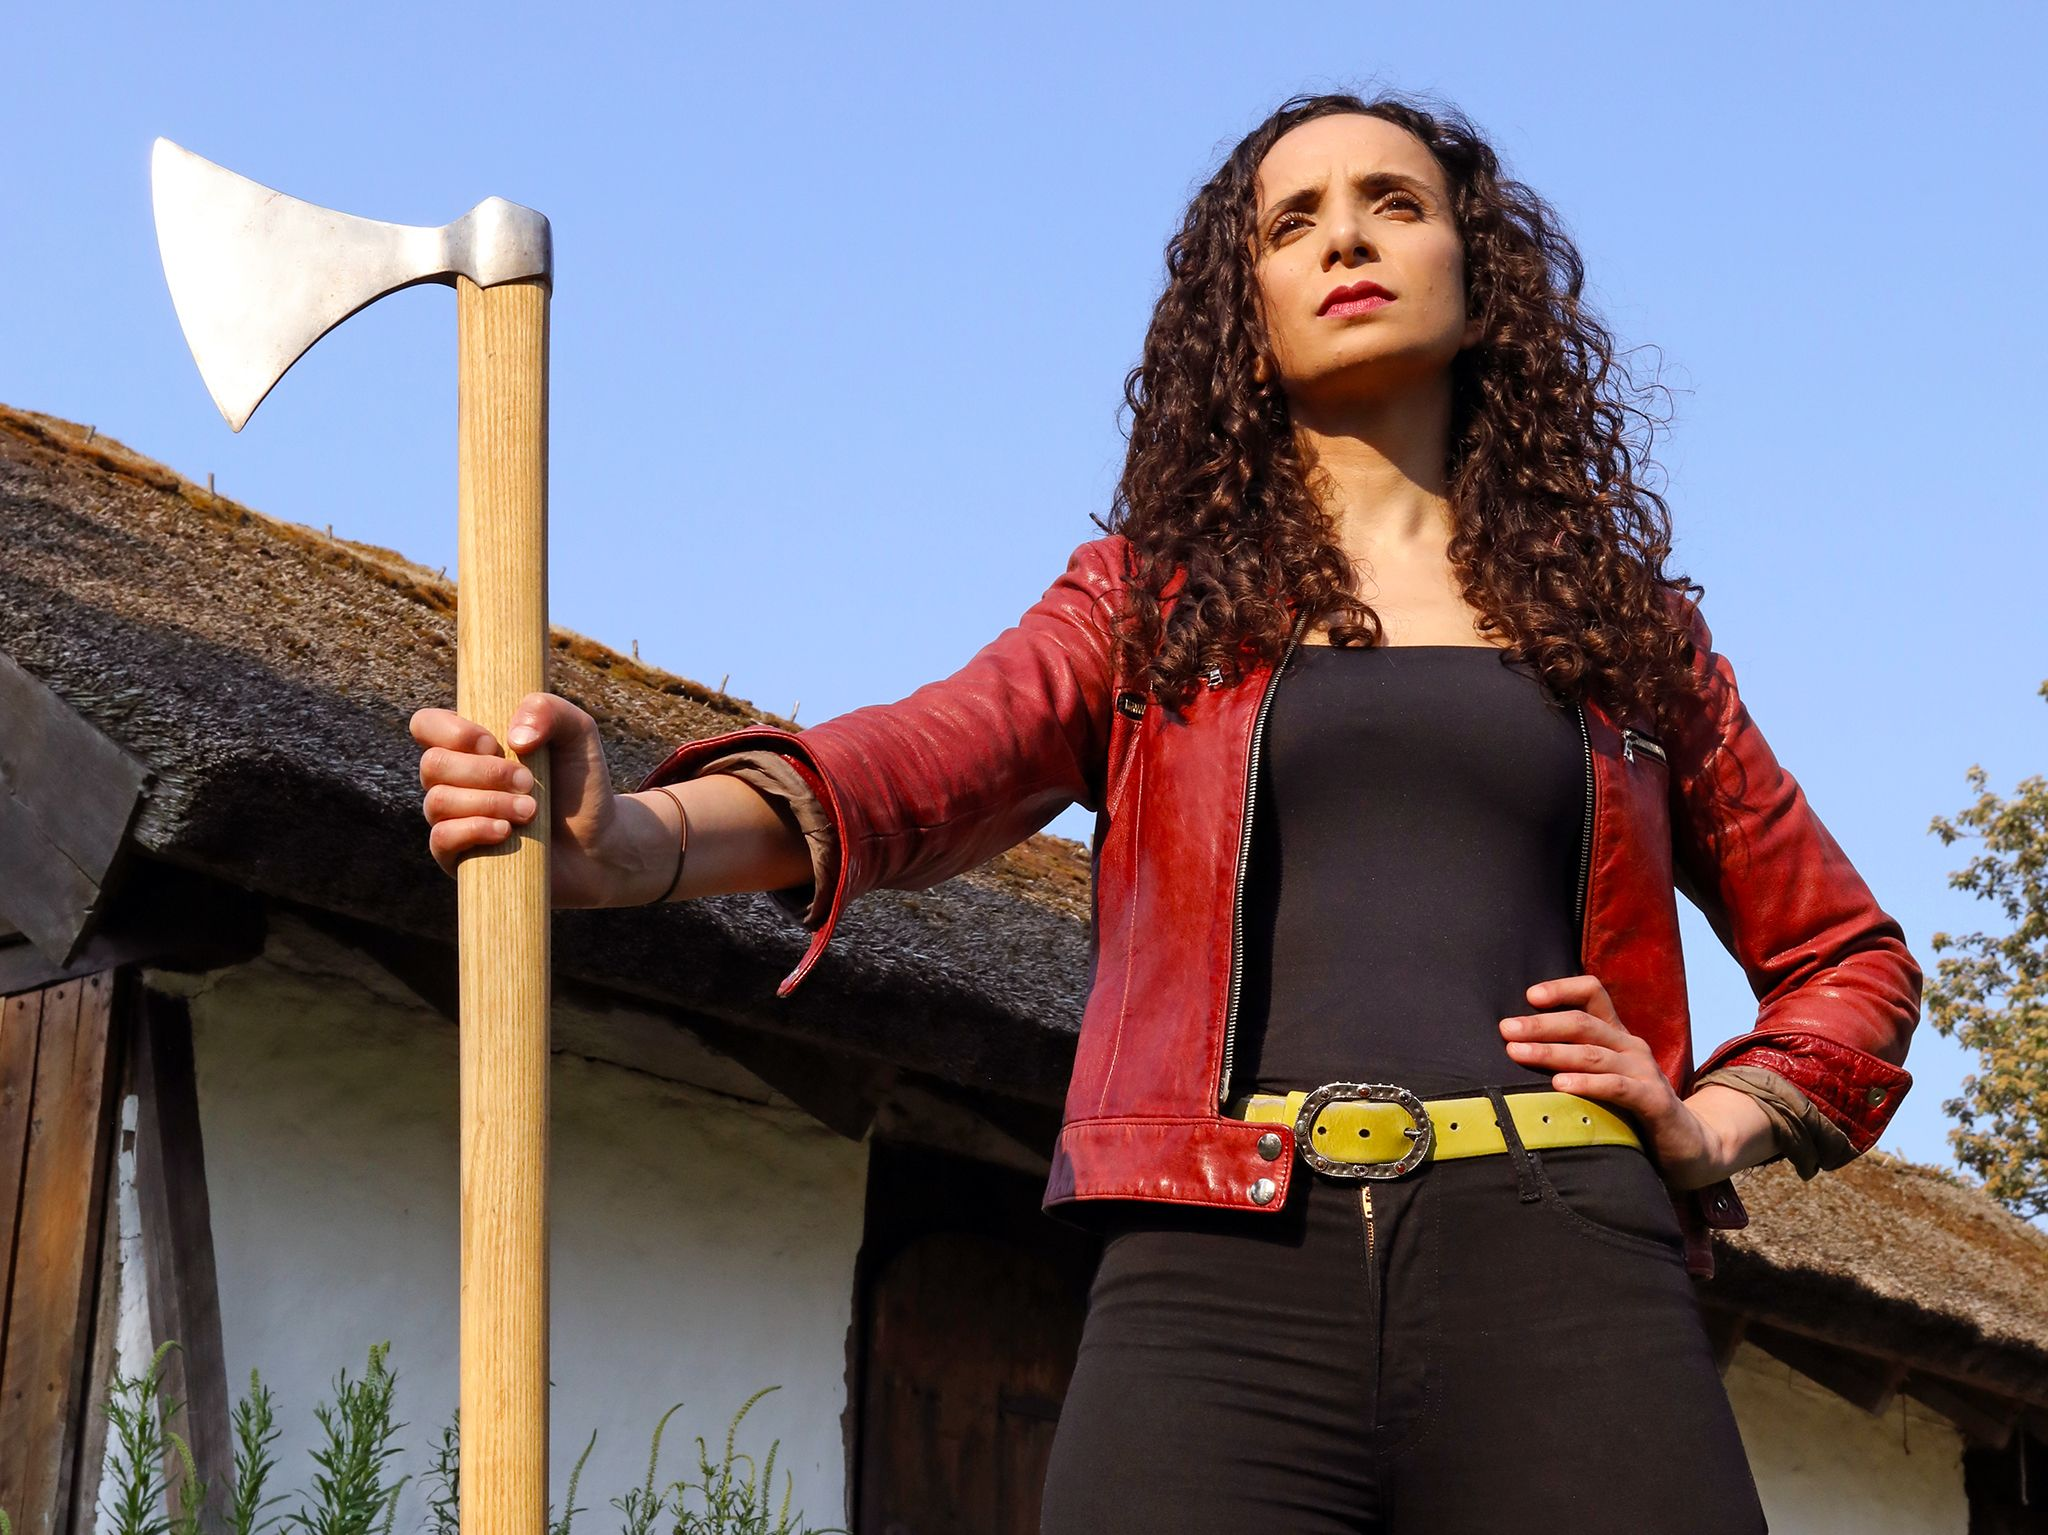 Ella at Trelleborg Fortress, Denmark holding Viking axe. This image is from Viking Warrior Queens. [Foto del giorno - October 2019]